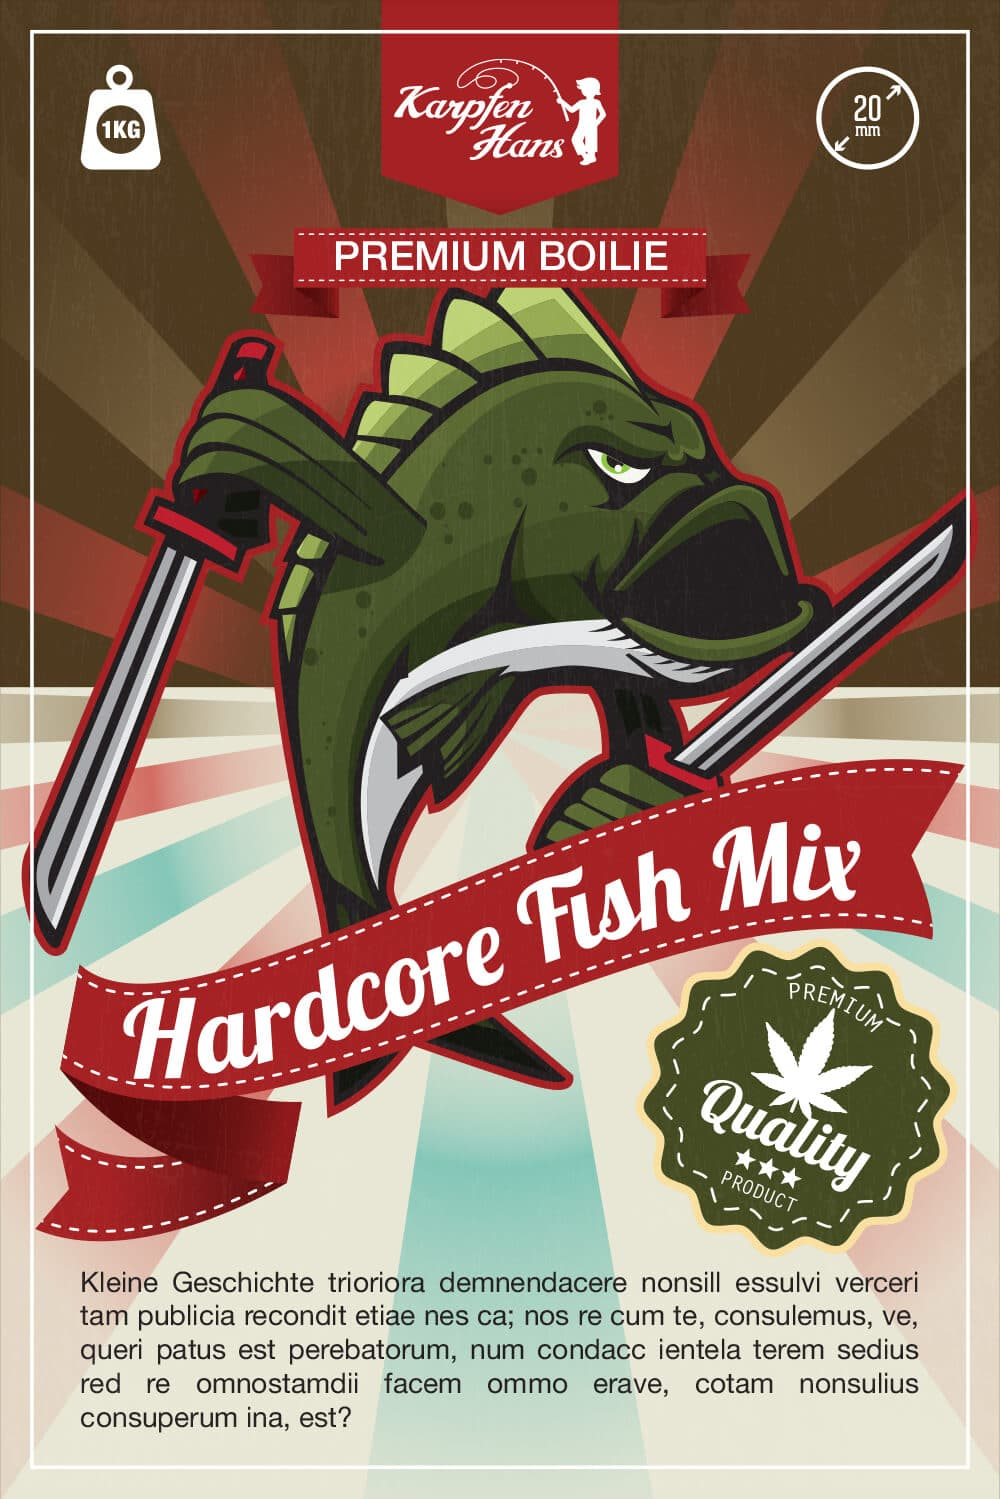 Hardcore Fish Mix Ver.2